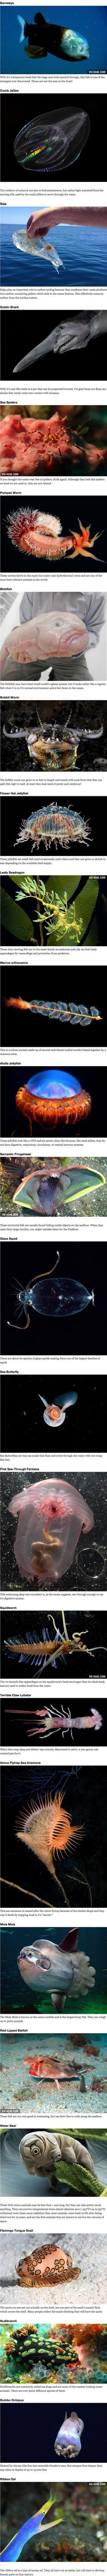 26 Mysterious Sea Creatures That Look Like They Belong In a Sci-Fi Movie